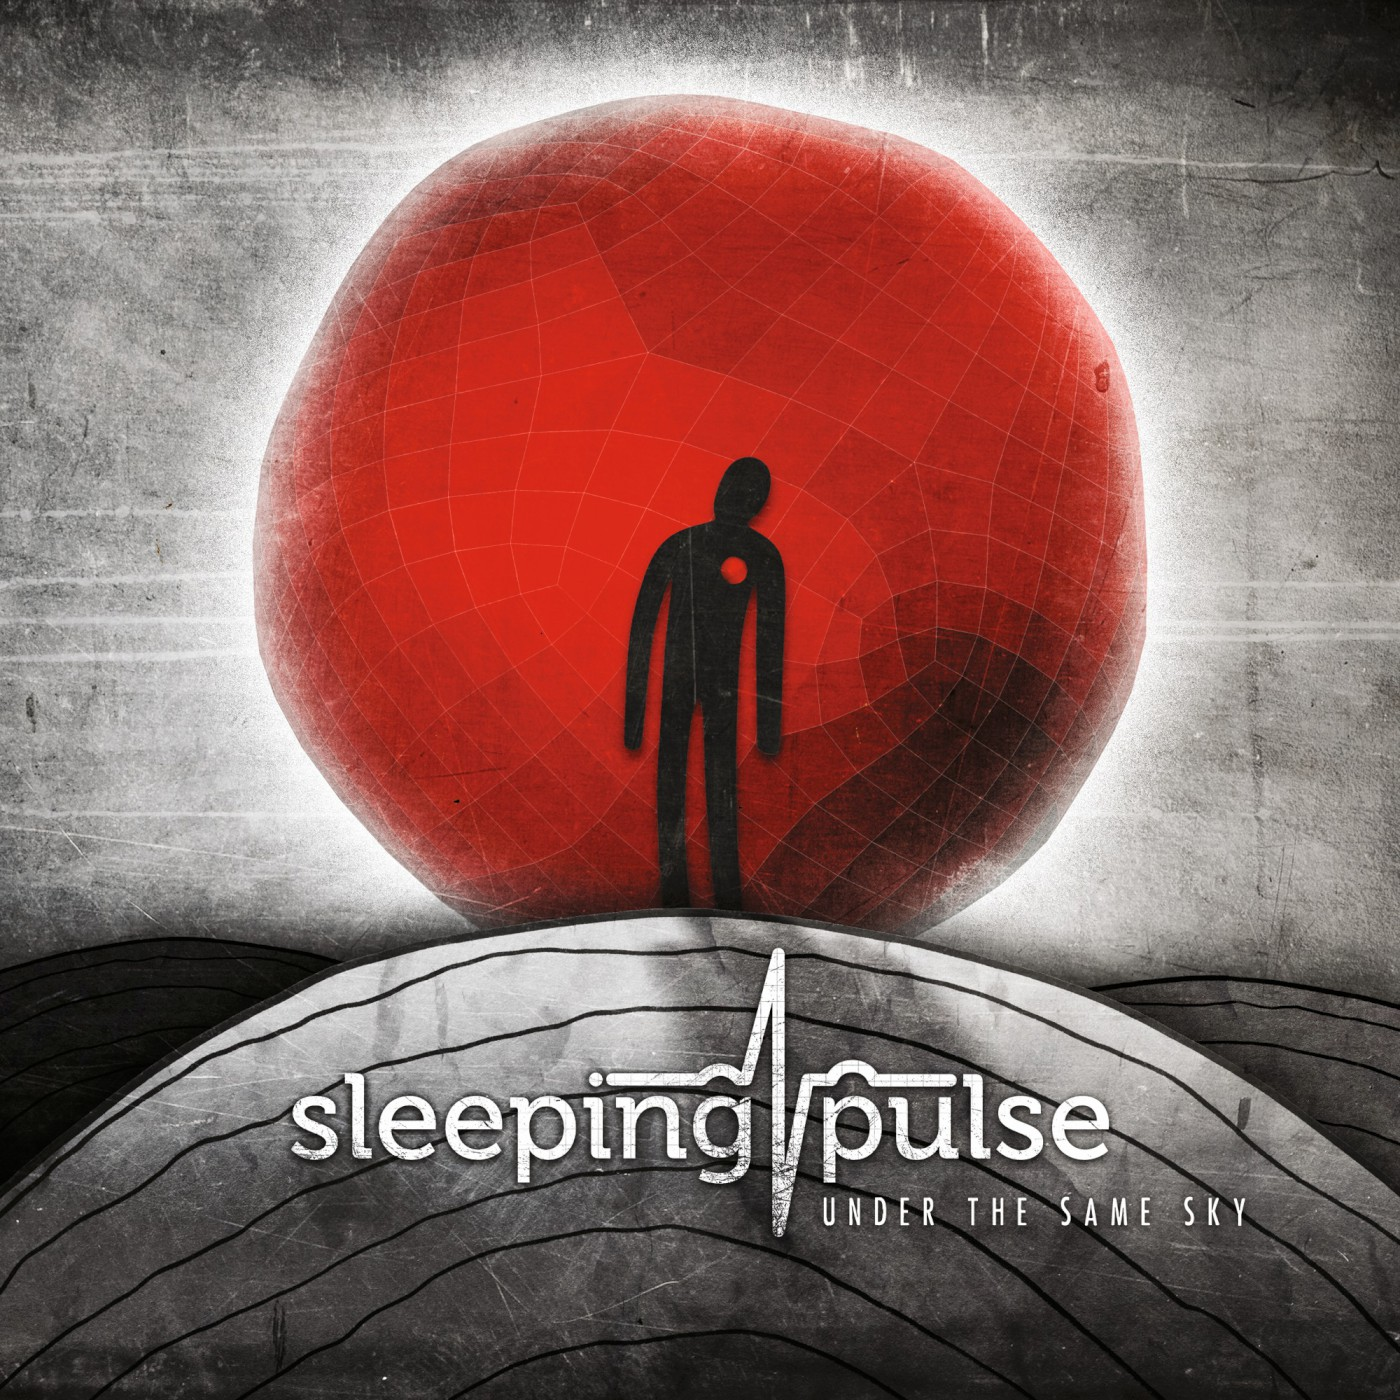 sleeping pulse unde the same sky